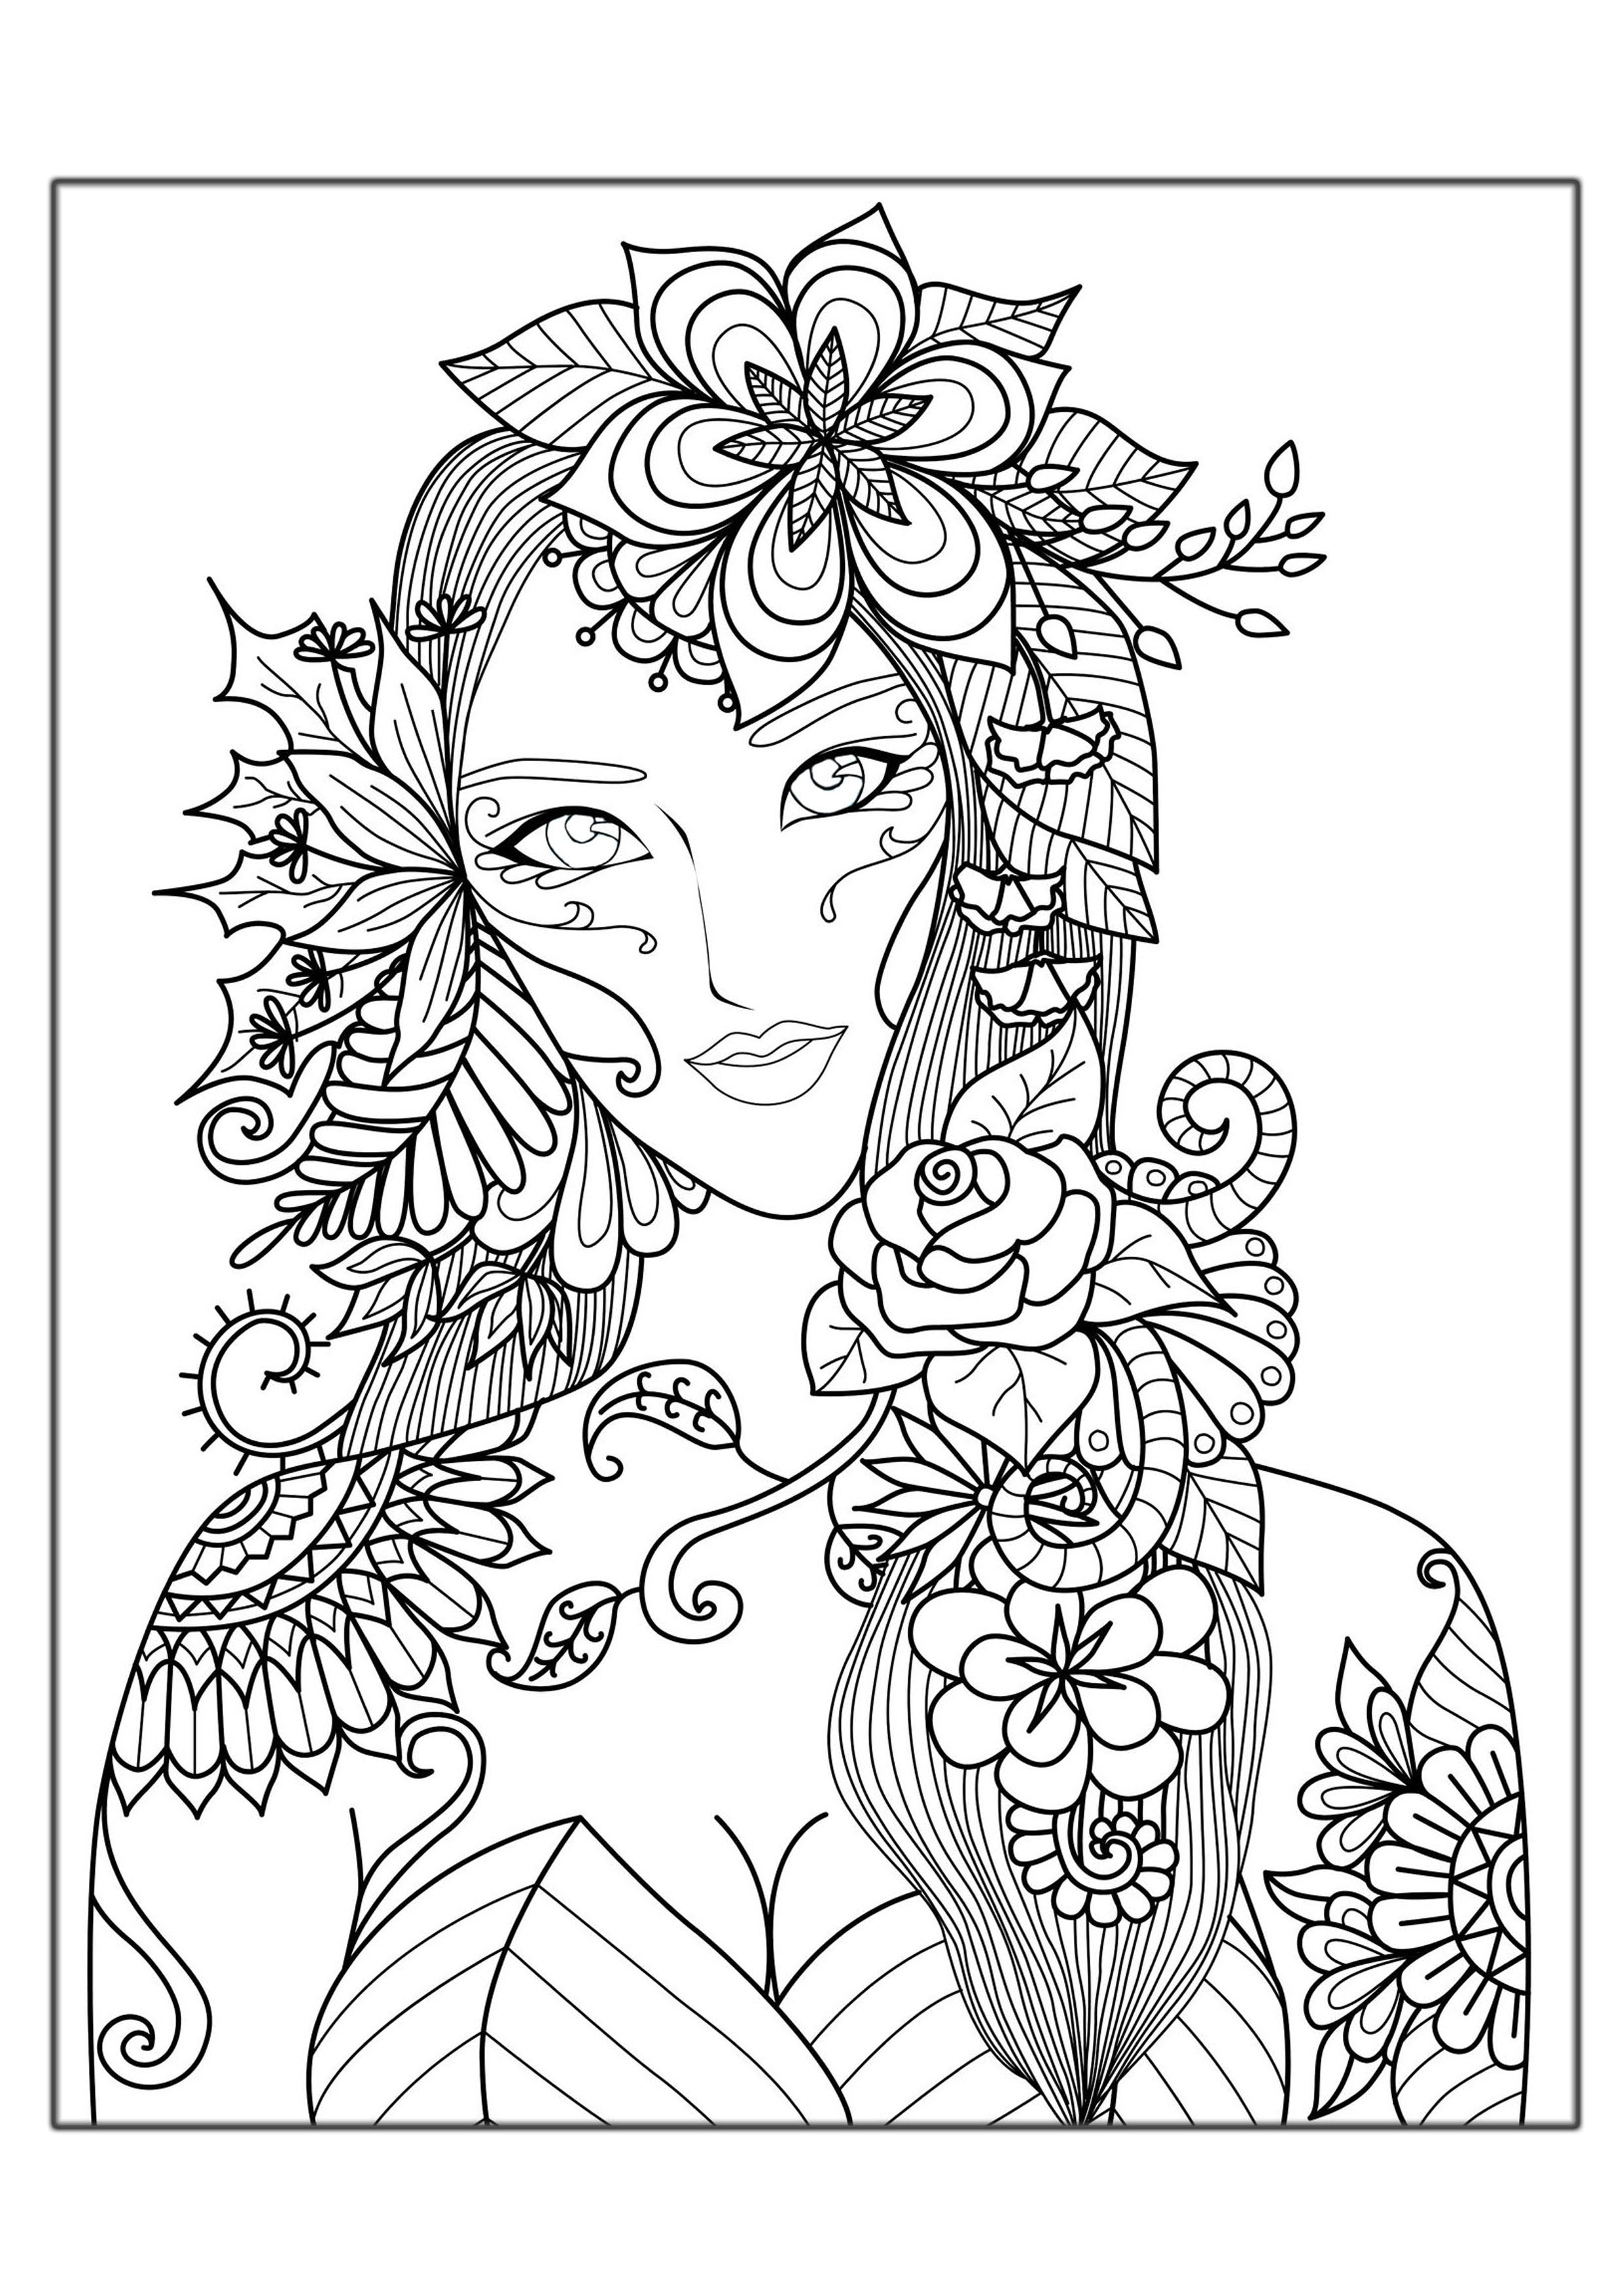 Hard coloring pages for adults best coloring pages for kids for Free printable coloring pages for adults and kids